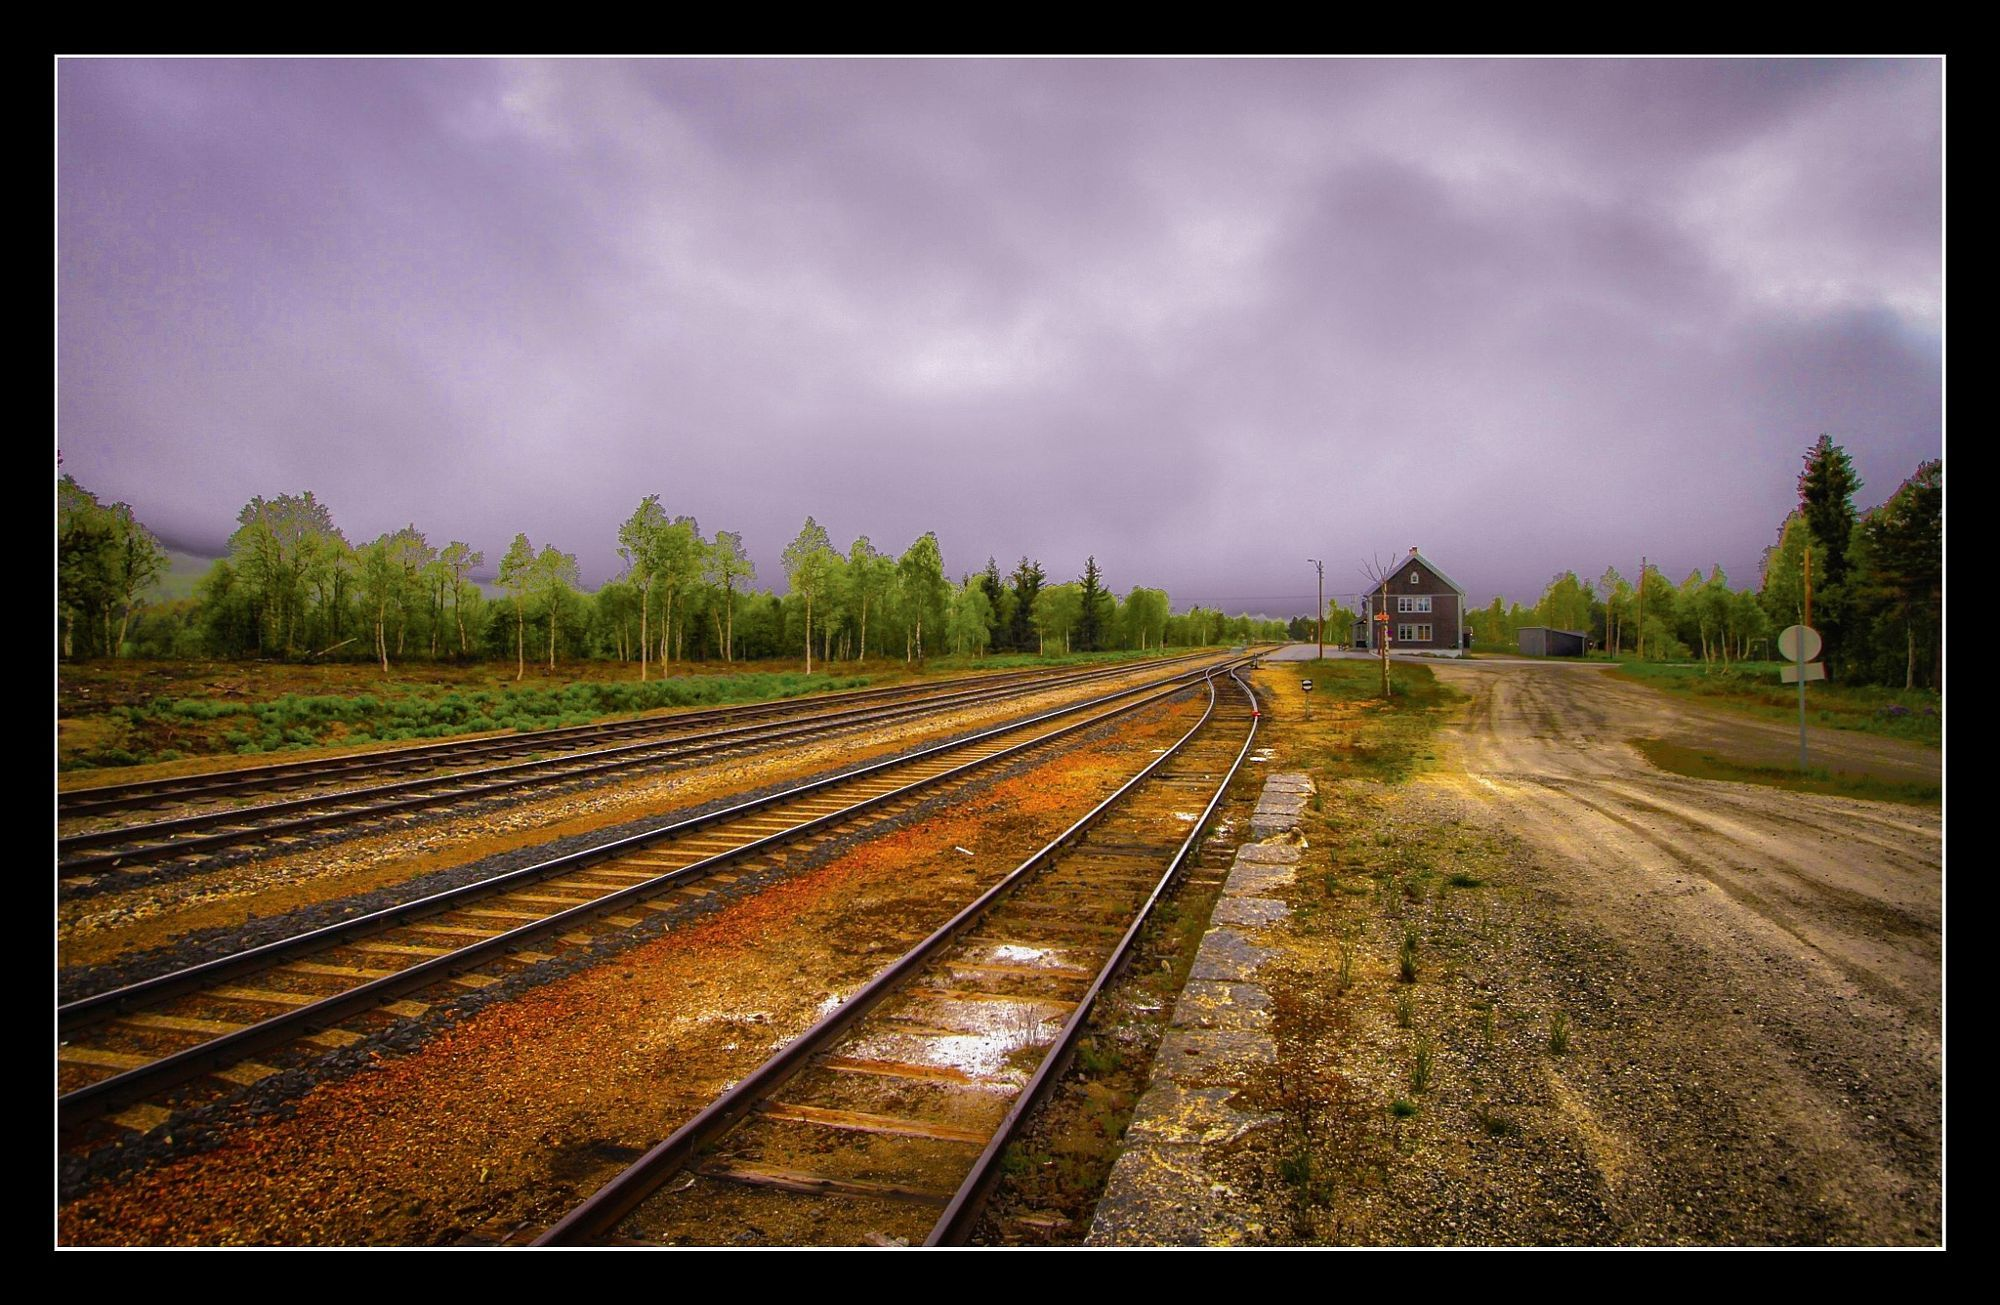 Einsame Bahnstation in Norwegen.  Travel photo by RenMeier1 http://rarme.com/?F9gZi